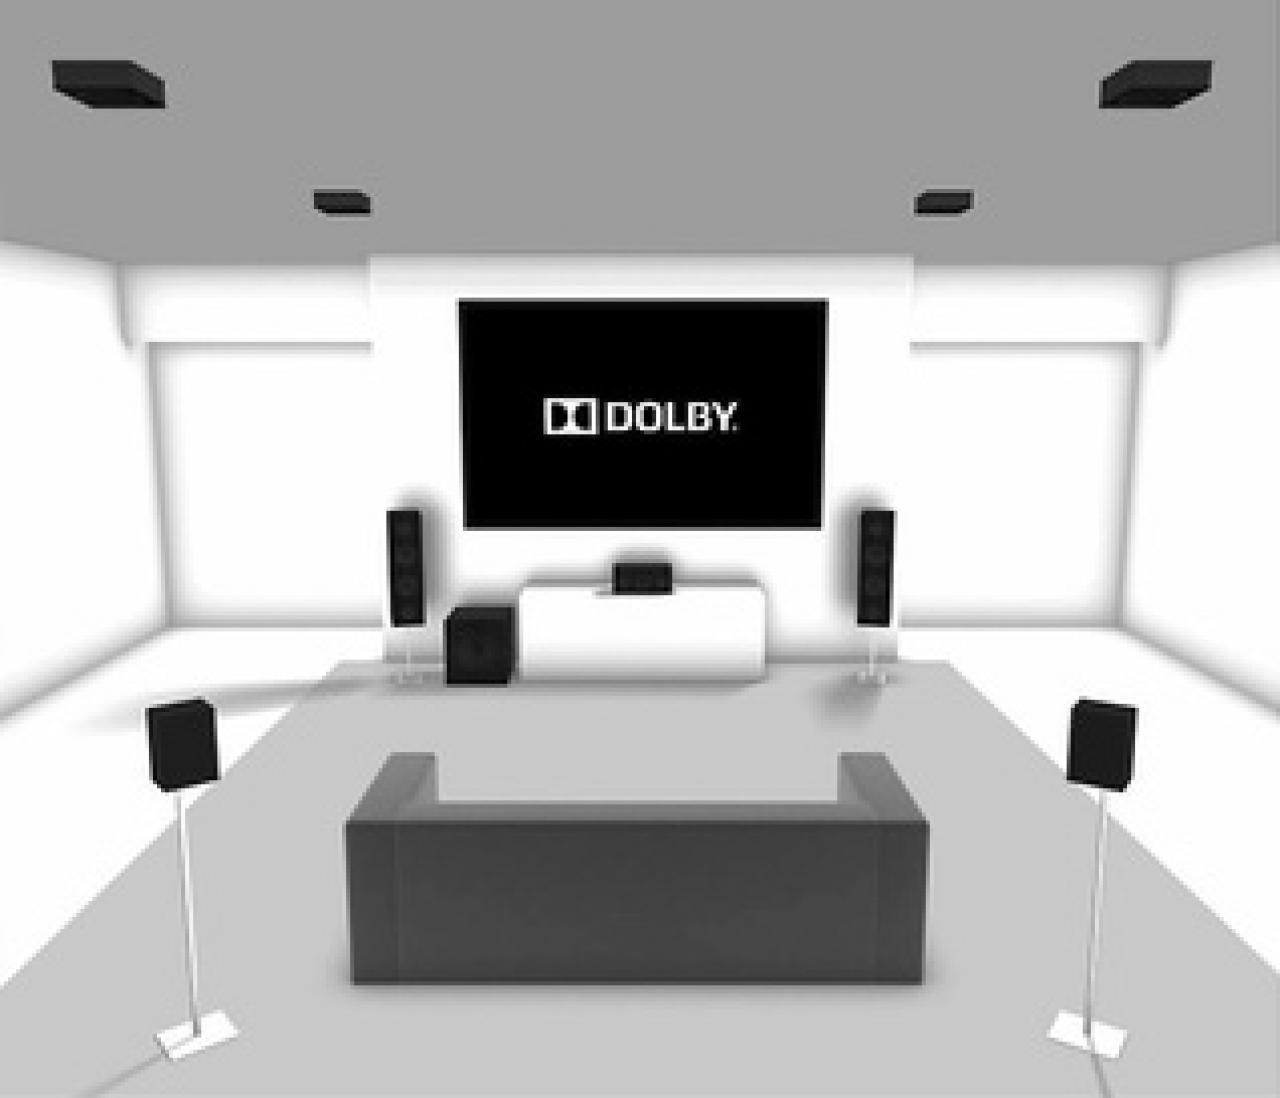 5.1.4 Dolby Atmos